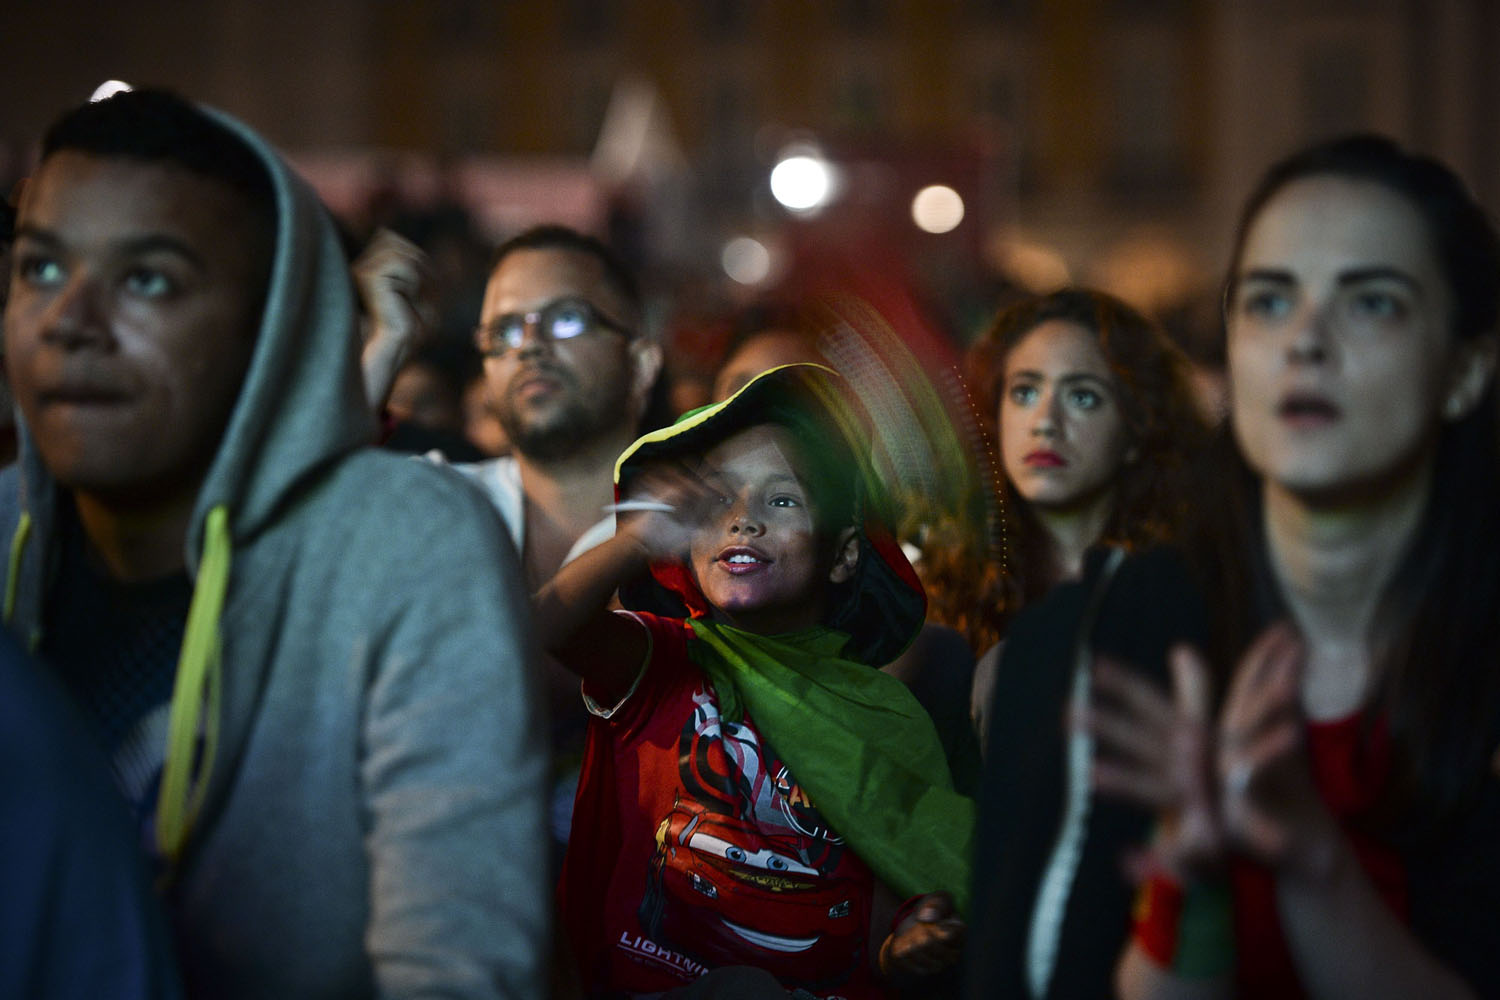 Jun. 22, 2014. Supporters of the Portuguese national football team gather at Terreiro do Paco Square in Lisbon.